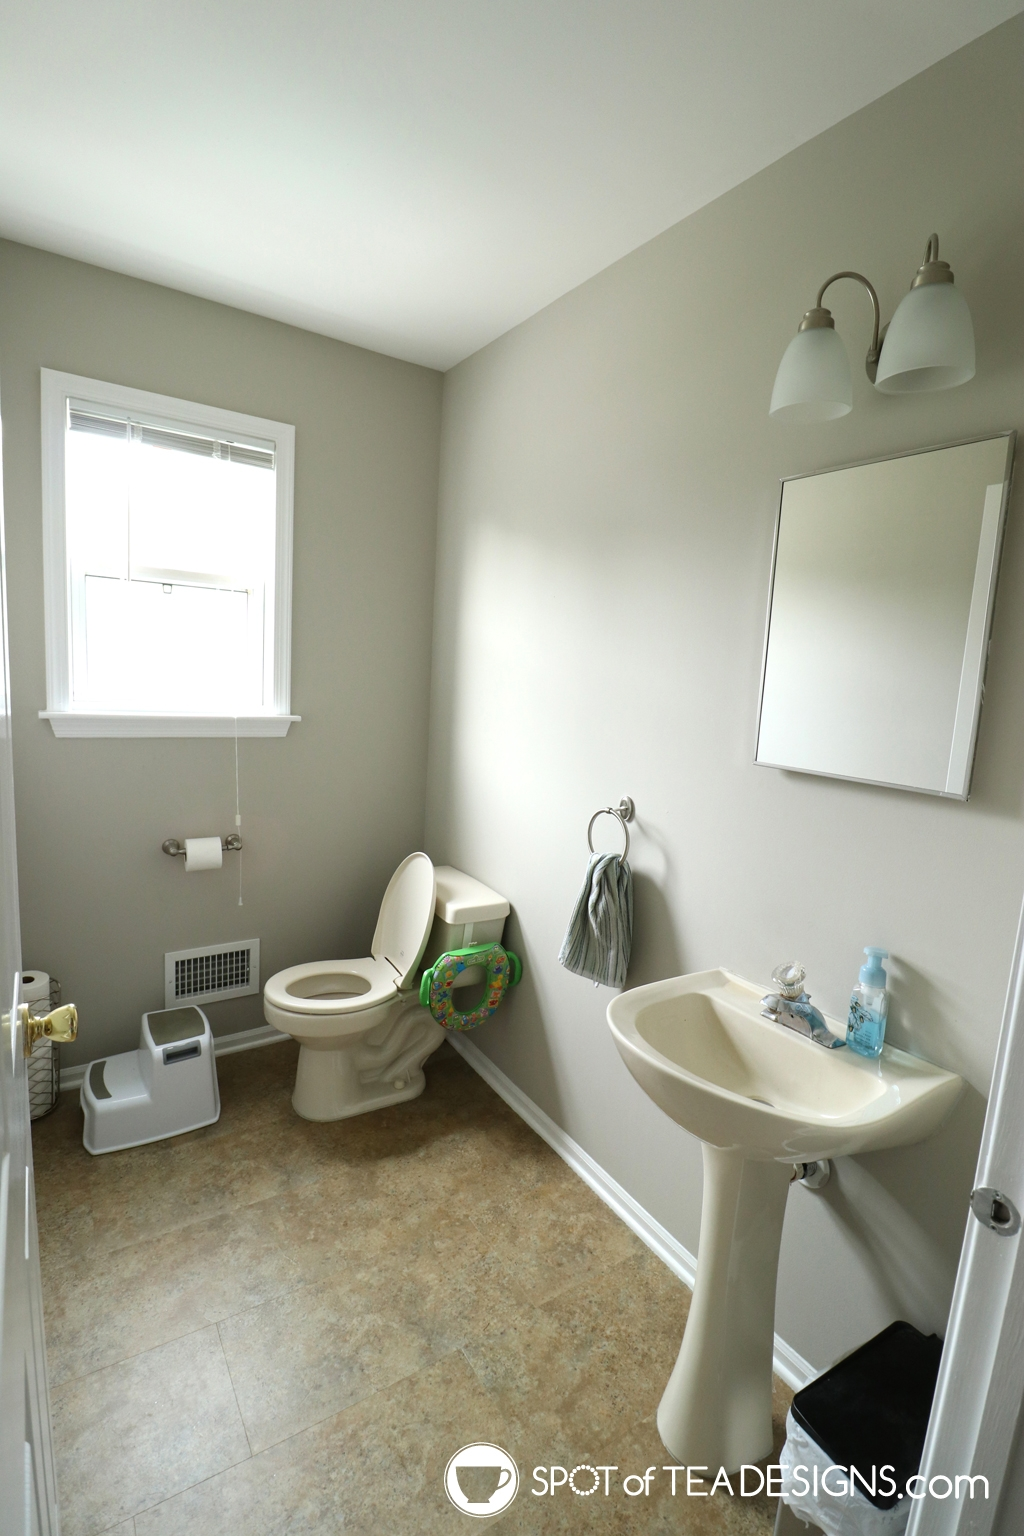 Modern Half Bathroom Remodel - Before photos | spotofteadesigns.com